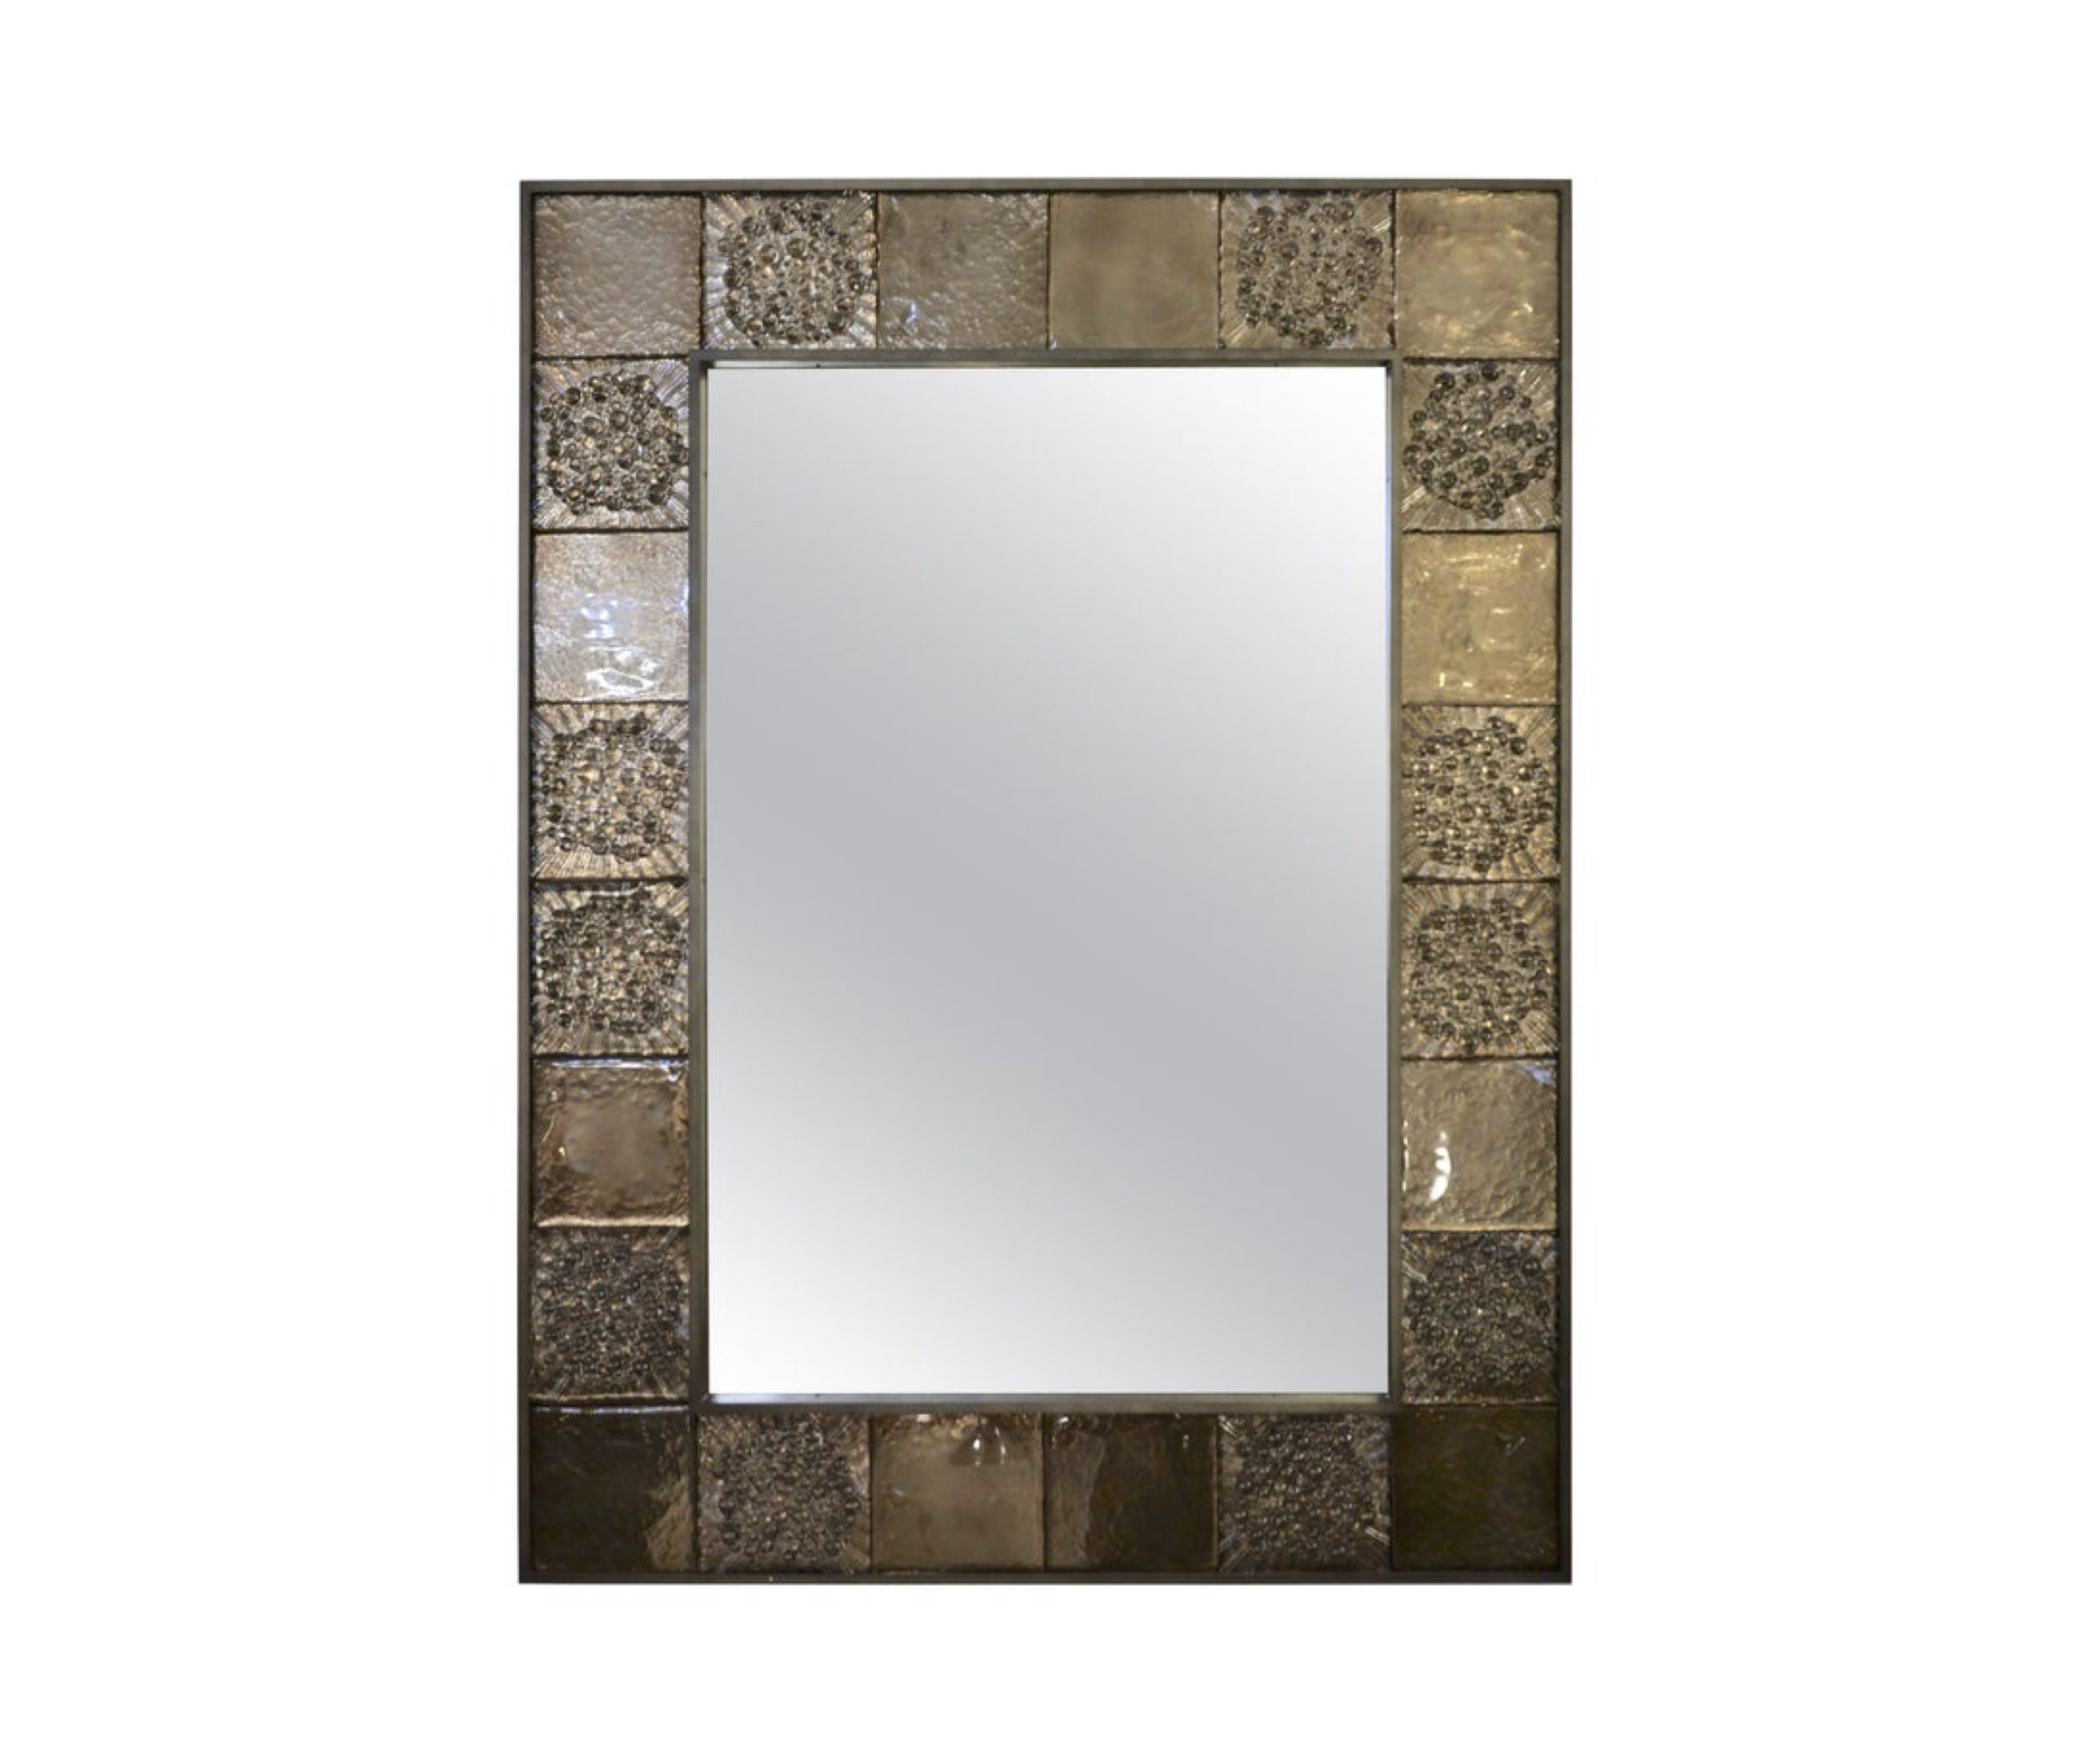 cosulich_interiors_and_antiques_products_new_york_design_bespoke_italian_smoked_amber_mirror_murano_glass_geometric_bronze_tiled_mirror-scaled-1